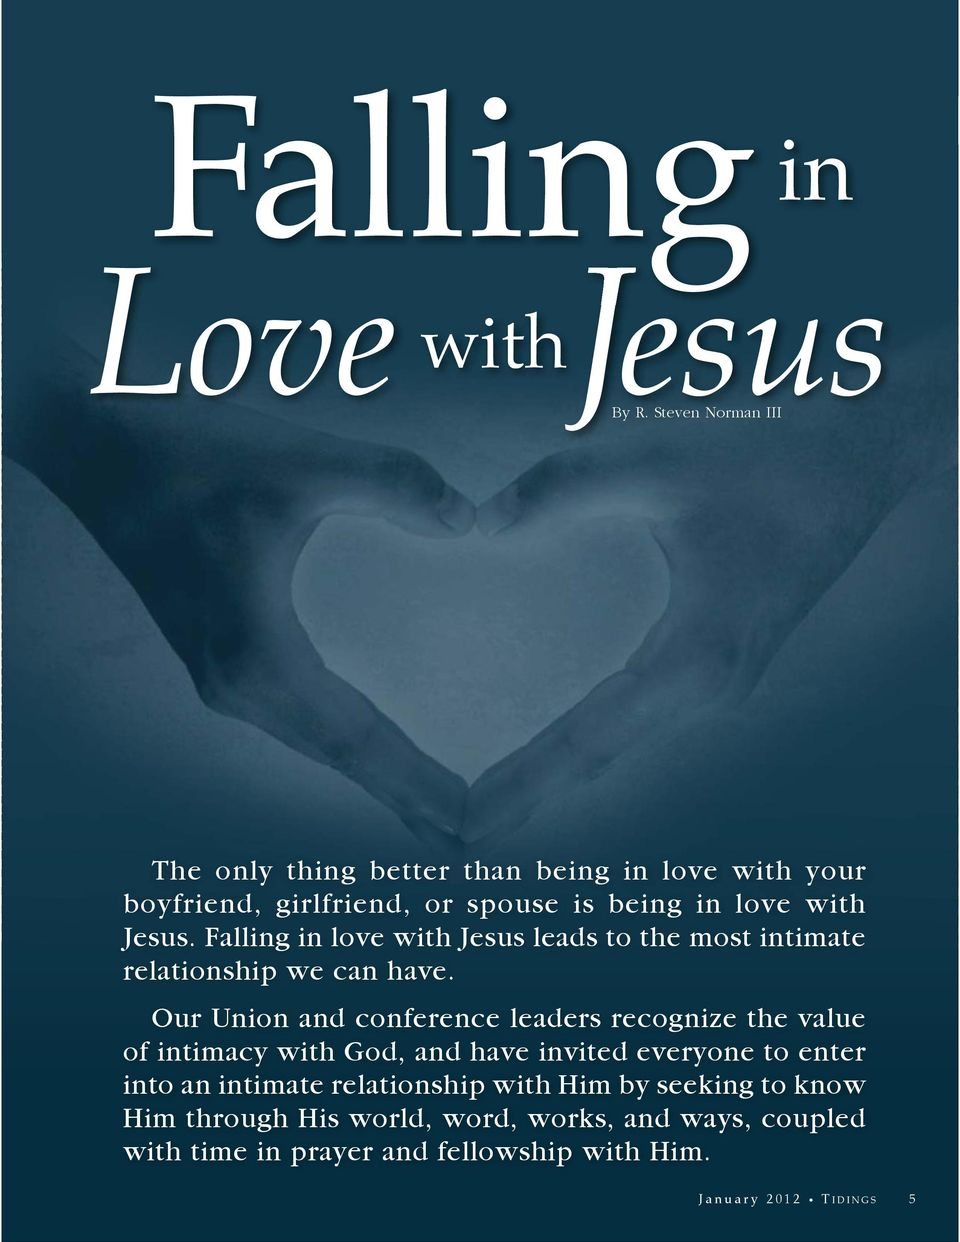 Falling in love with Jesus leads to the most intimate relationship we can have.